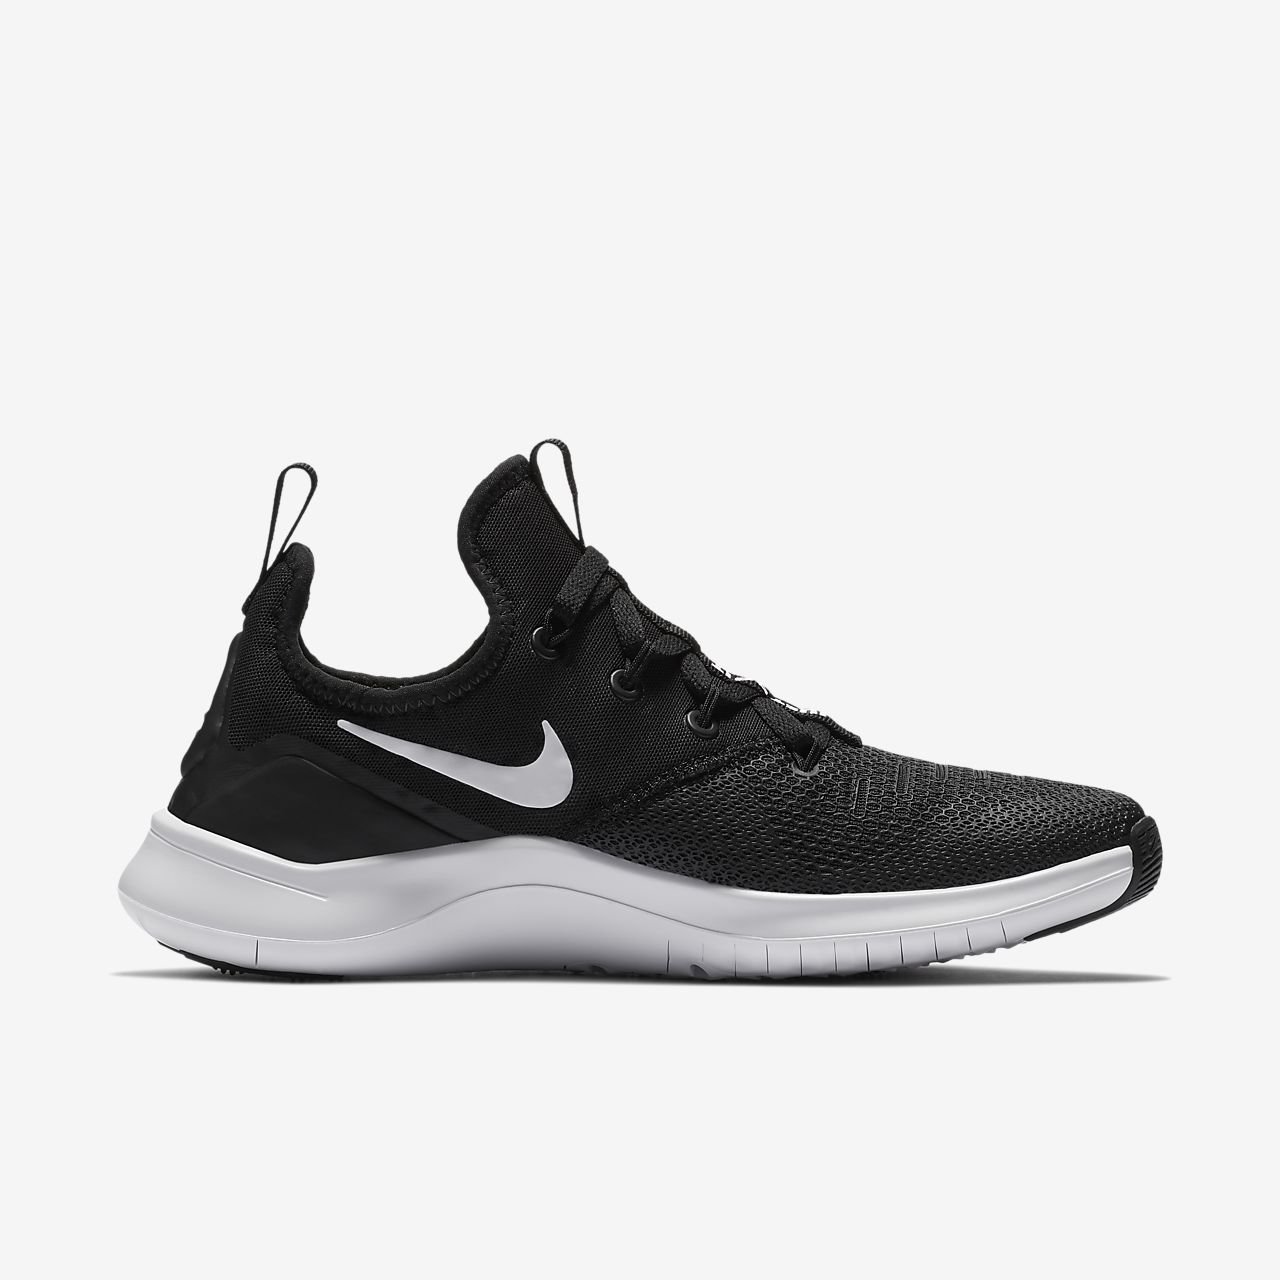 info for 68c6c 4eff5 Women s Gym HIIT Cross Training Shoe. Nike Free TR8